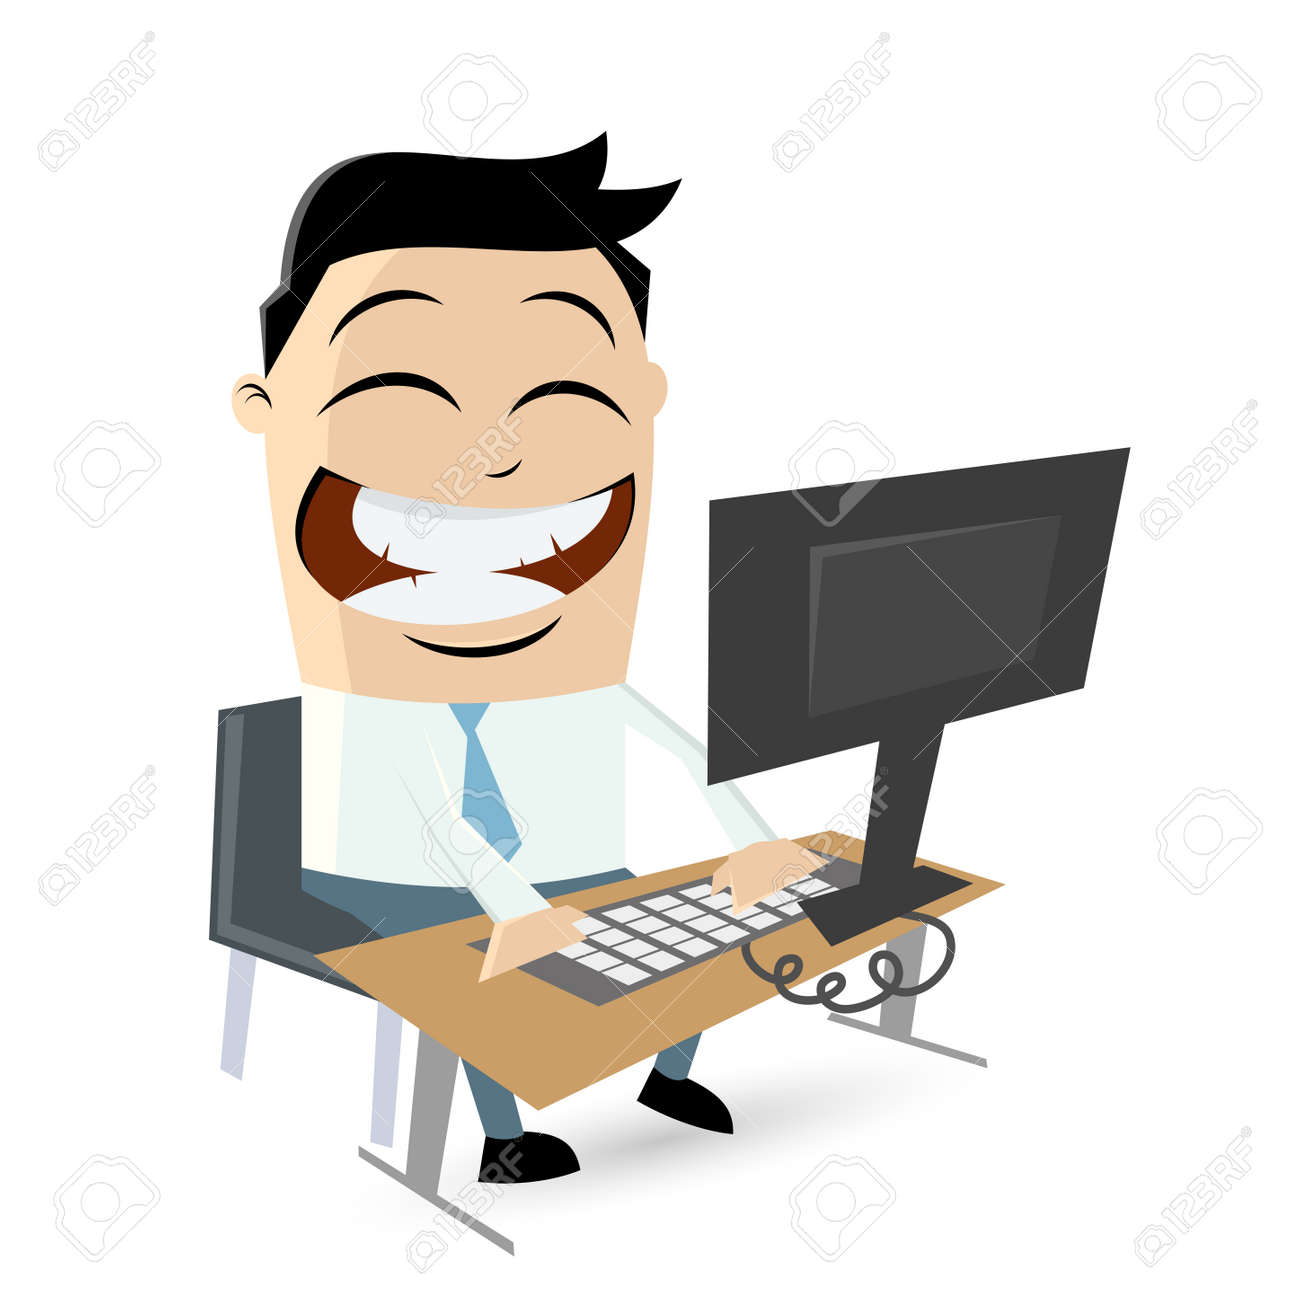 funny cartoon man sitting on computer Standard-Bild - 26729721